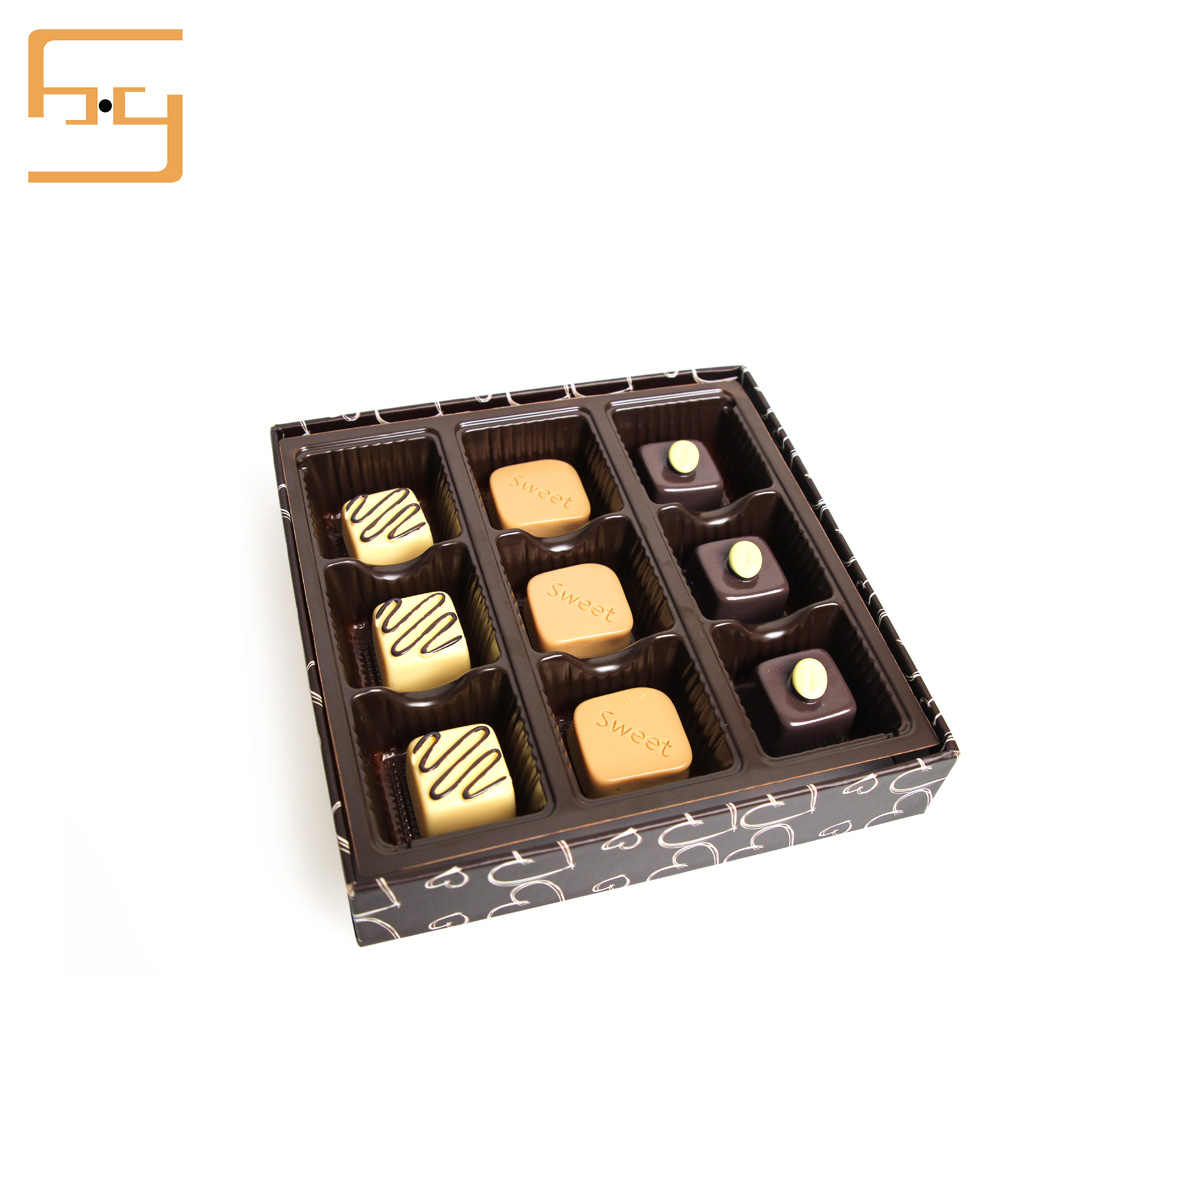 2019 Transparent chocolate tray box chocolateblister tray box packaging tray